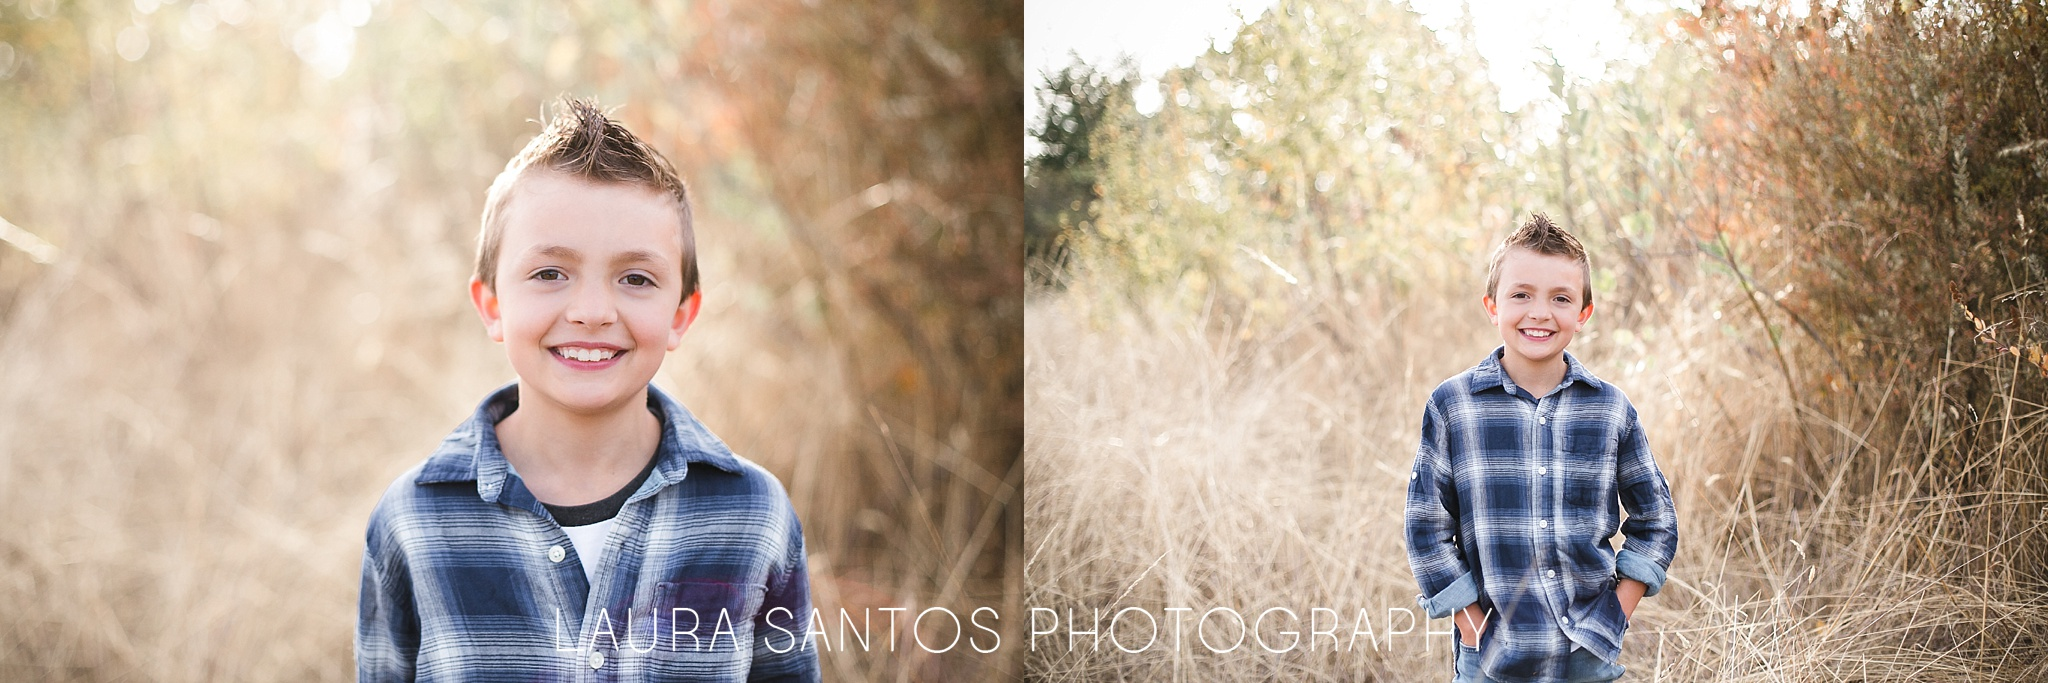 Laura Santos Photography Portland Oregon Family Photographer_0416.jpg